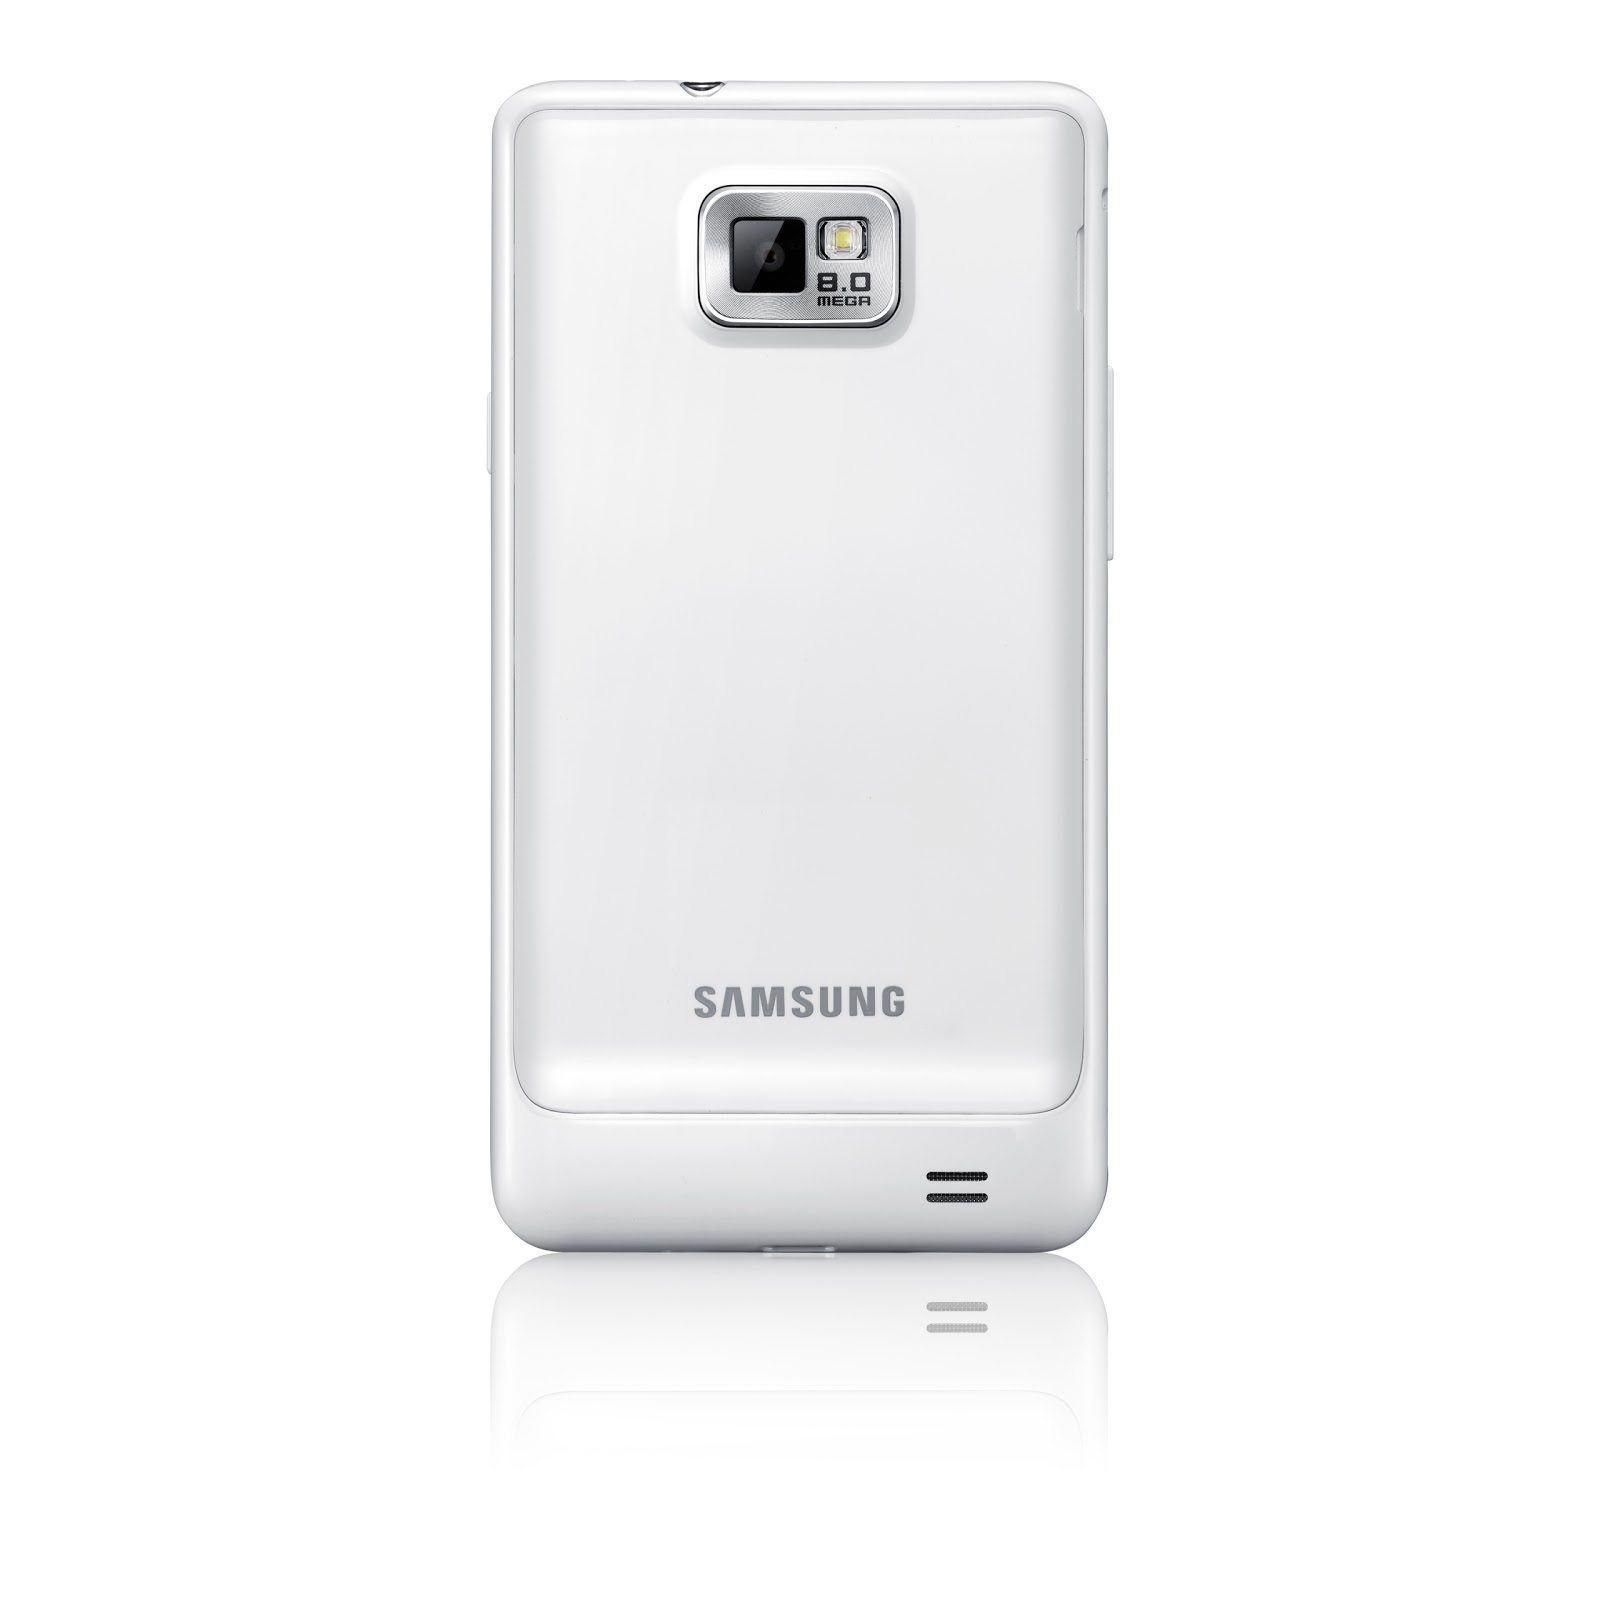 comments 0 comments to samsung galaxy s2 pictures post a comment 1600x1600